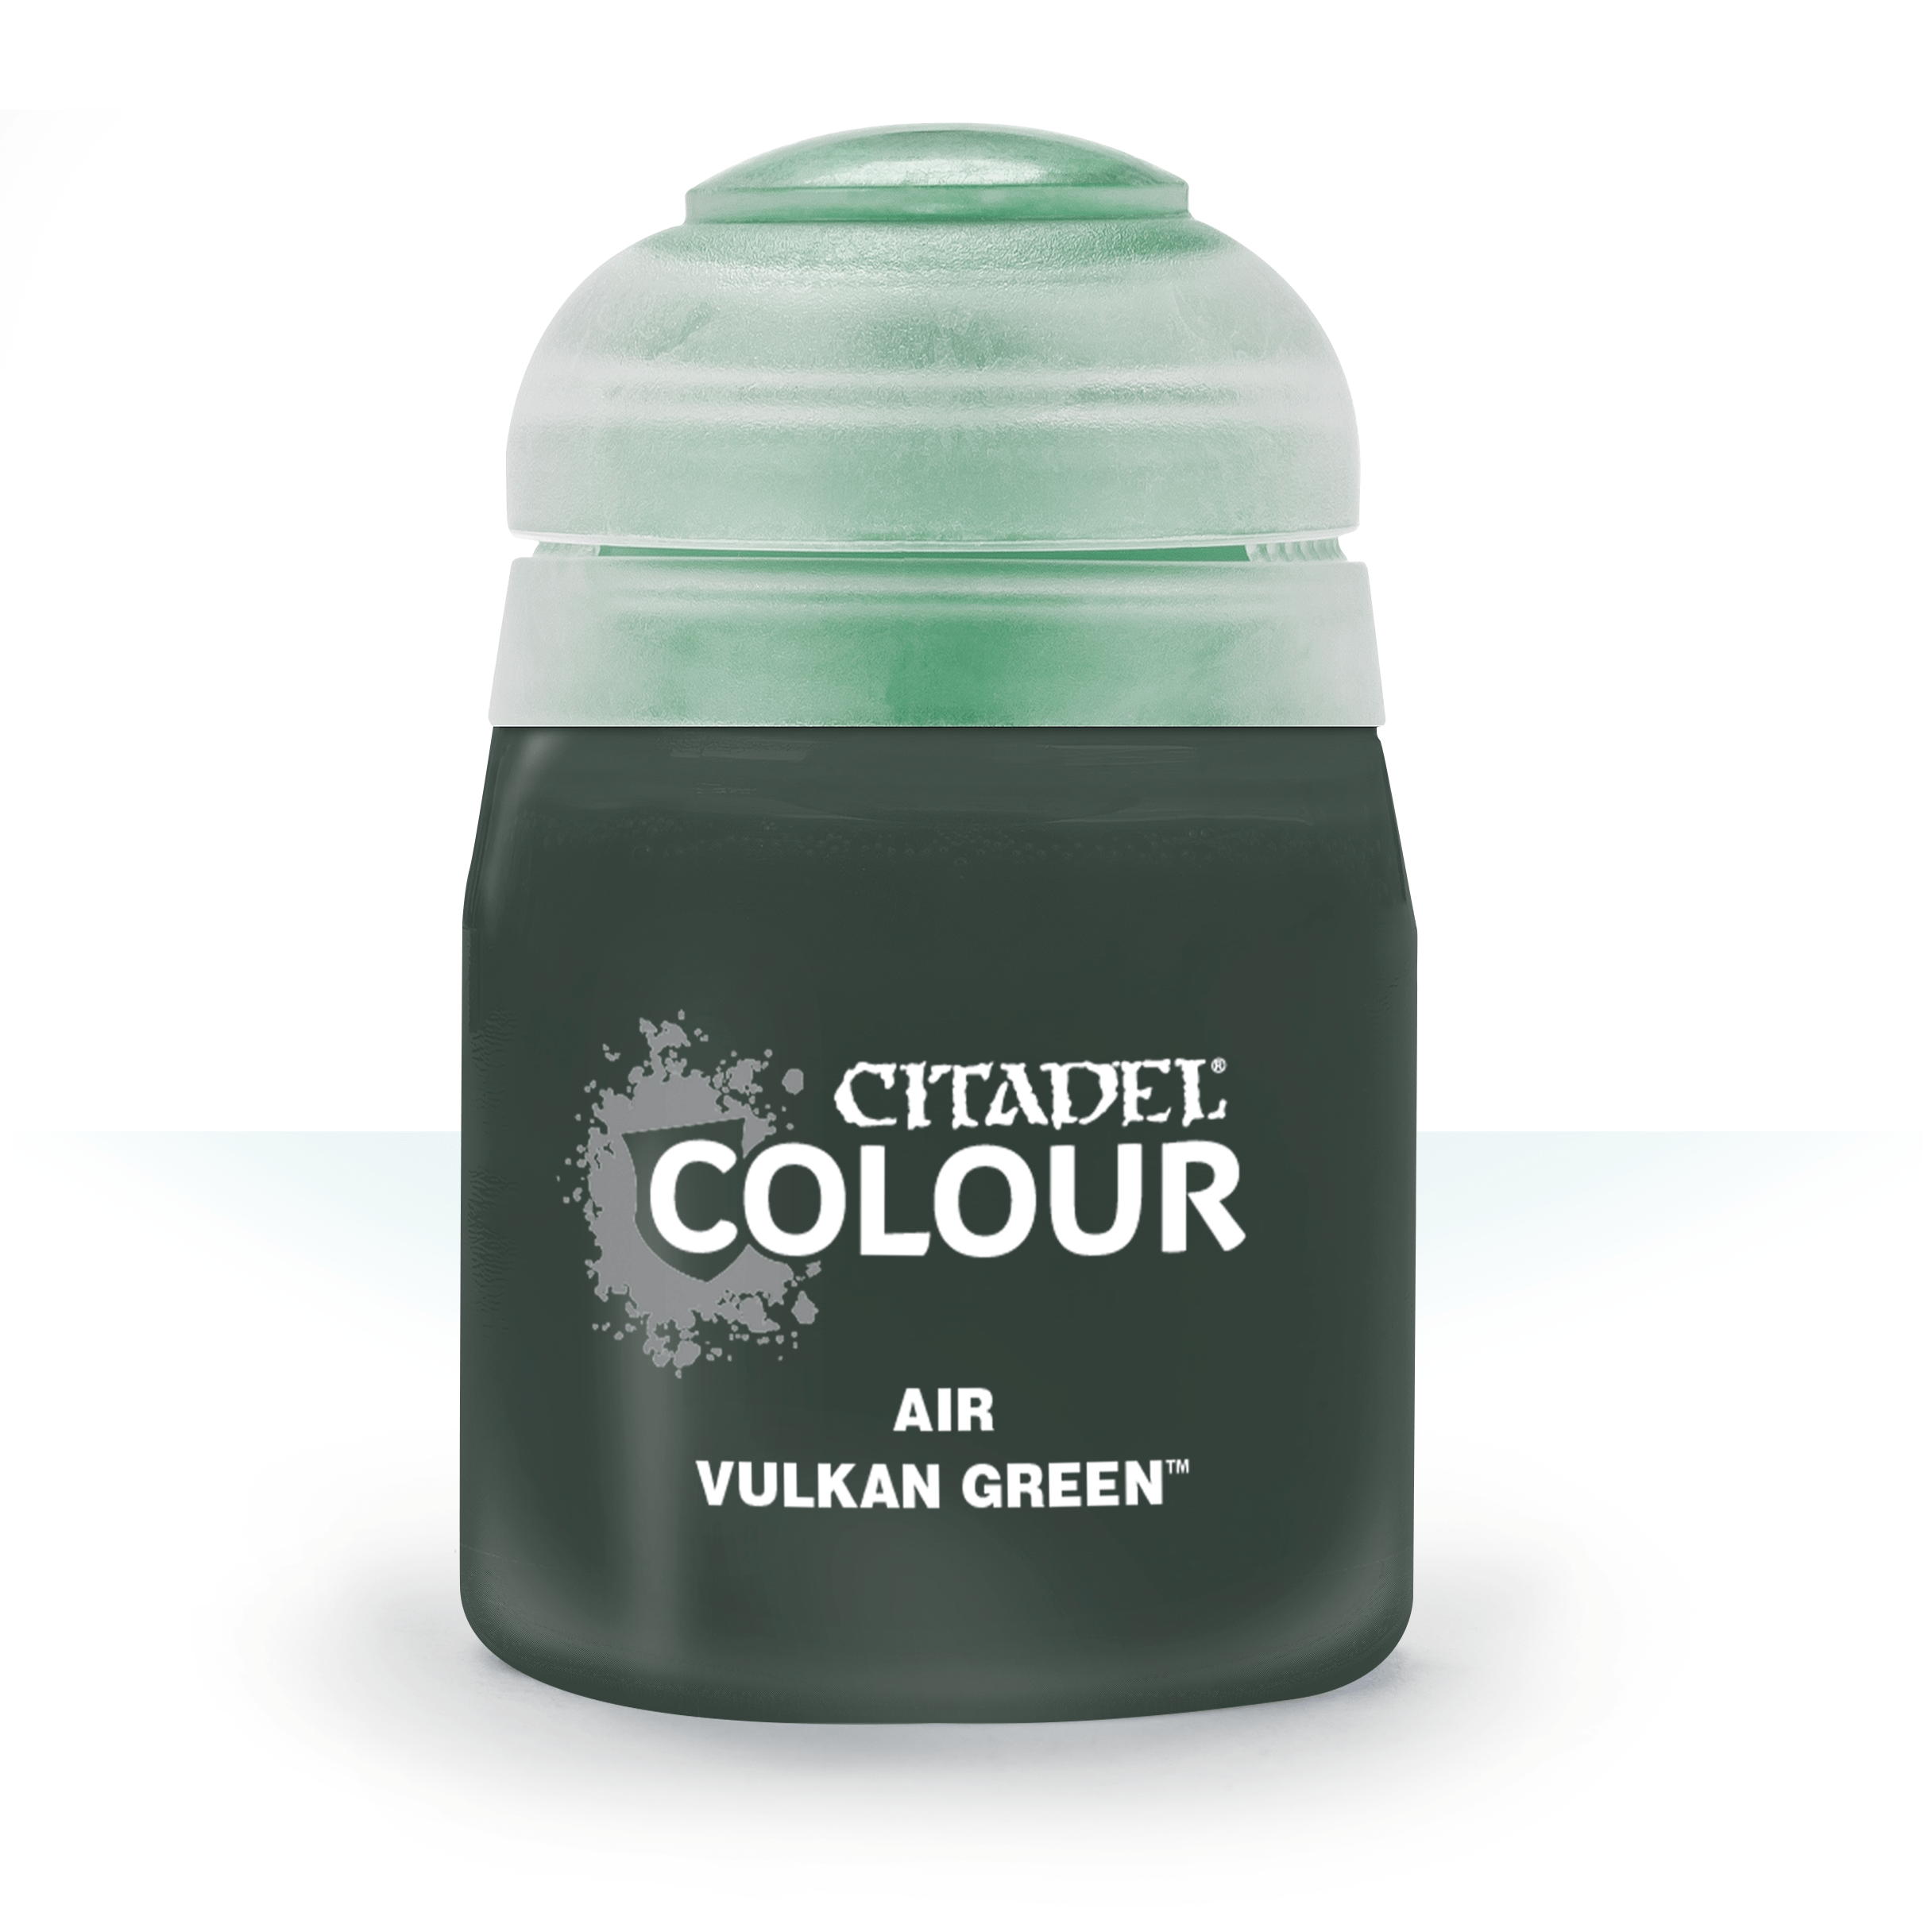 Citadel Airbrush Paints: Vulkan Green